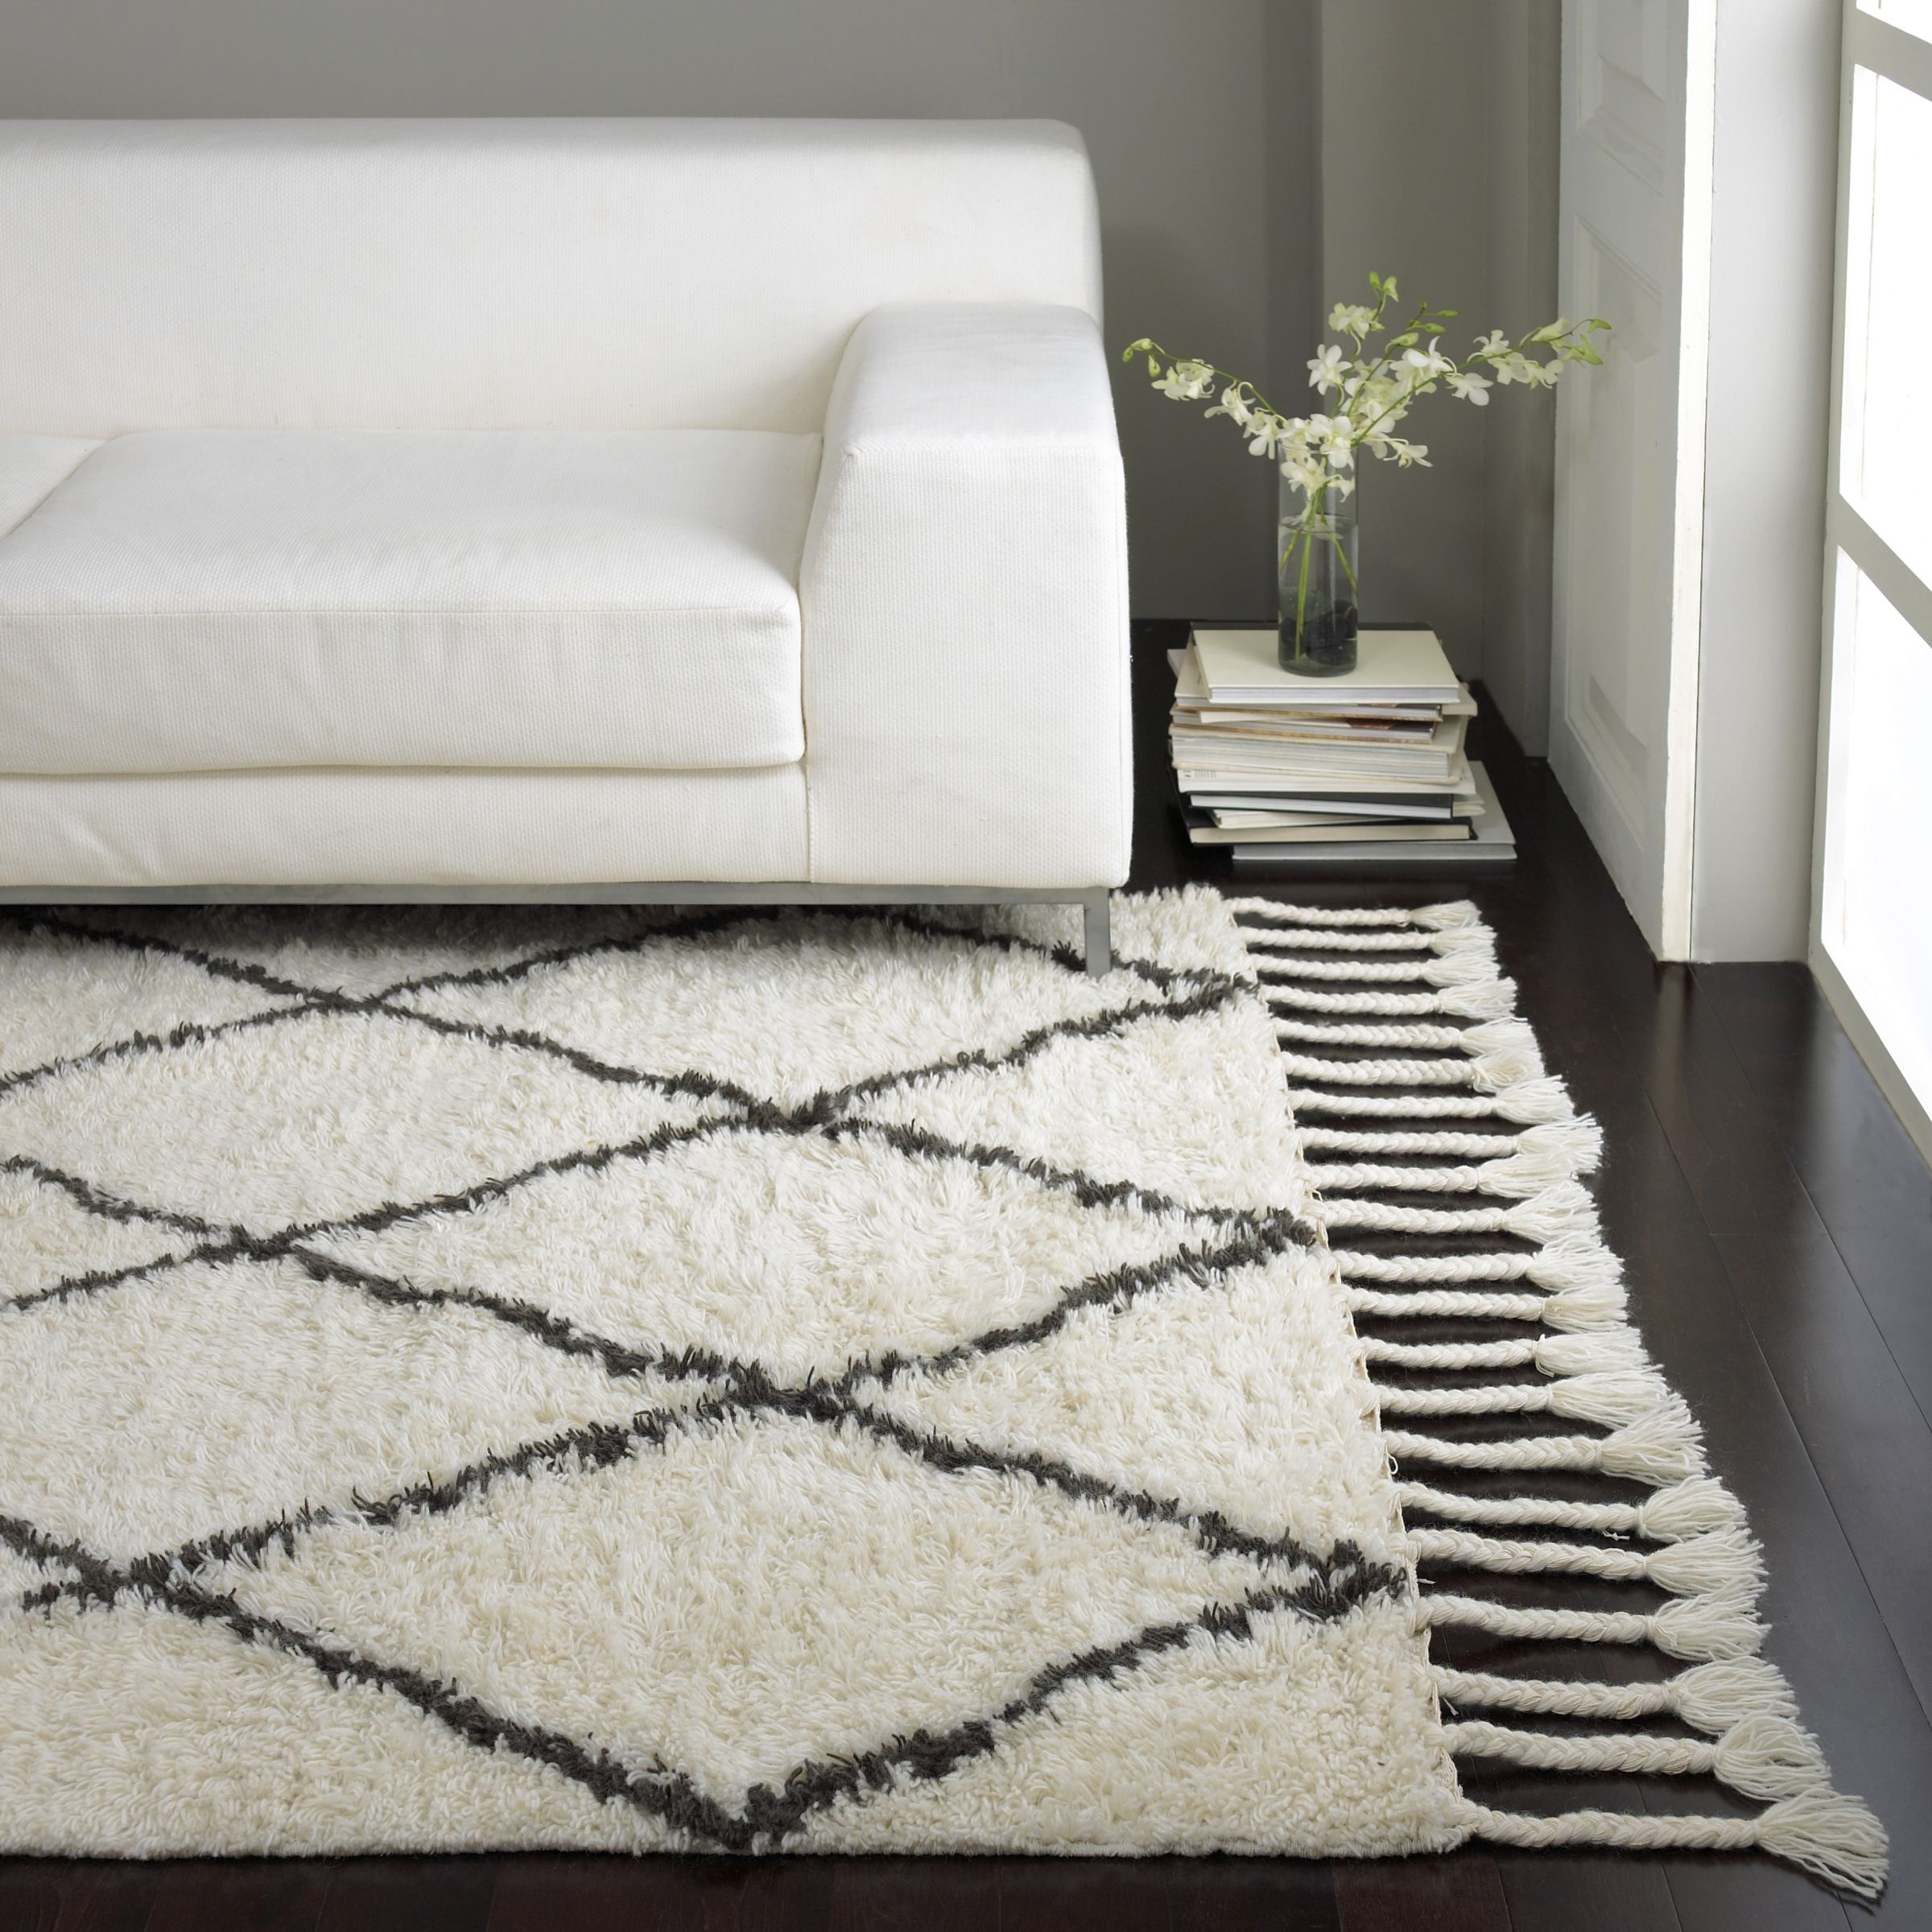 Rugs Appealing Pattern 8×10 Area Rug For Nice Floor Decor Ideas With 10×14 Wool Area Rugs (#12 of 15)